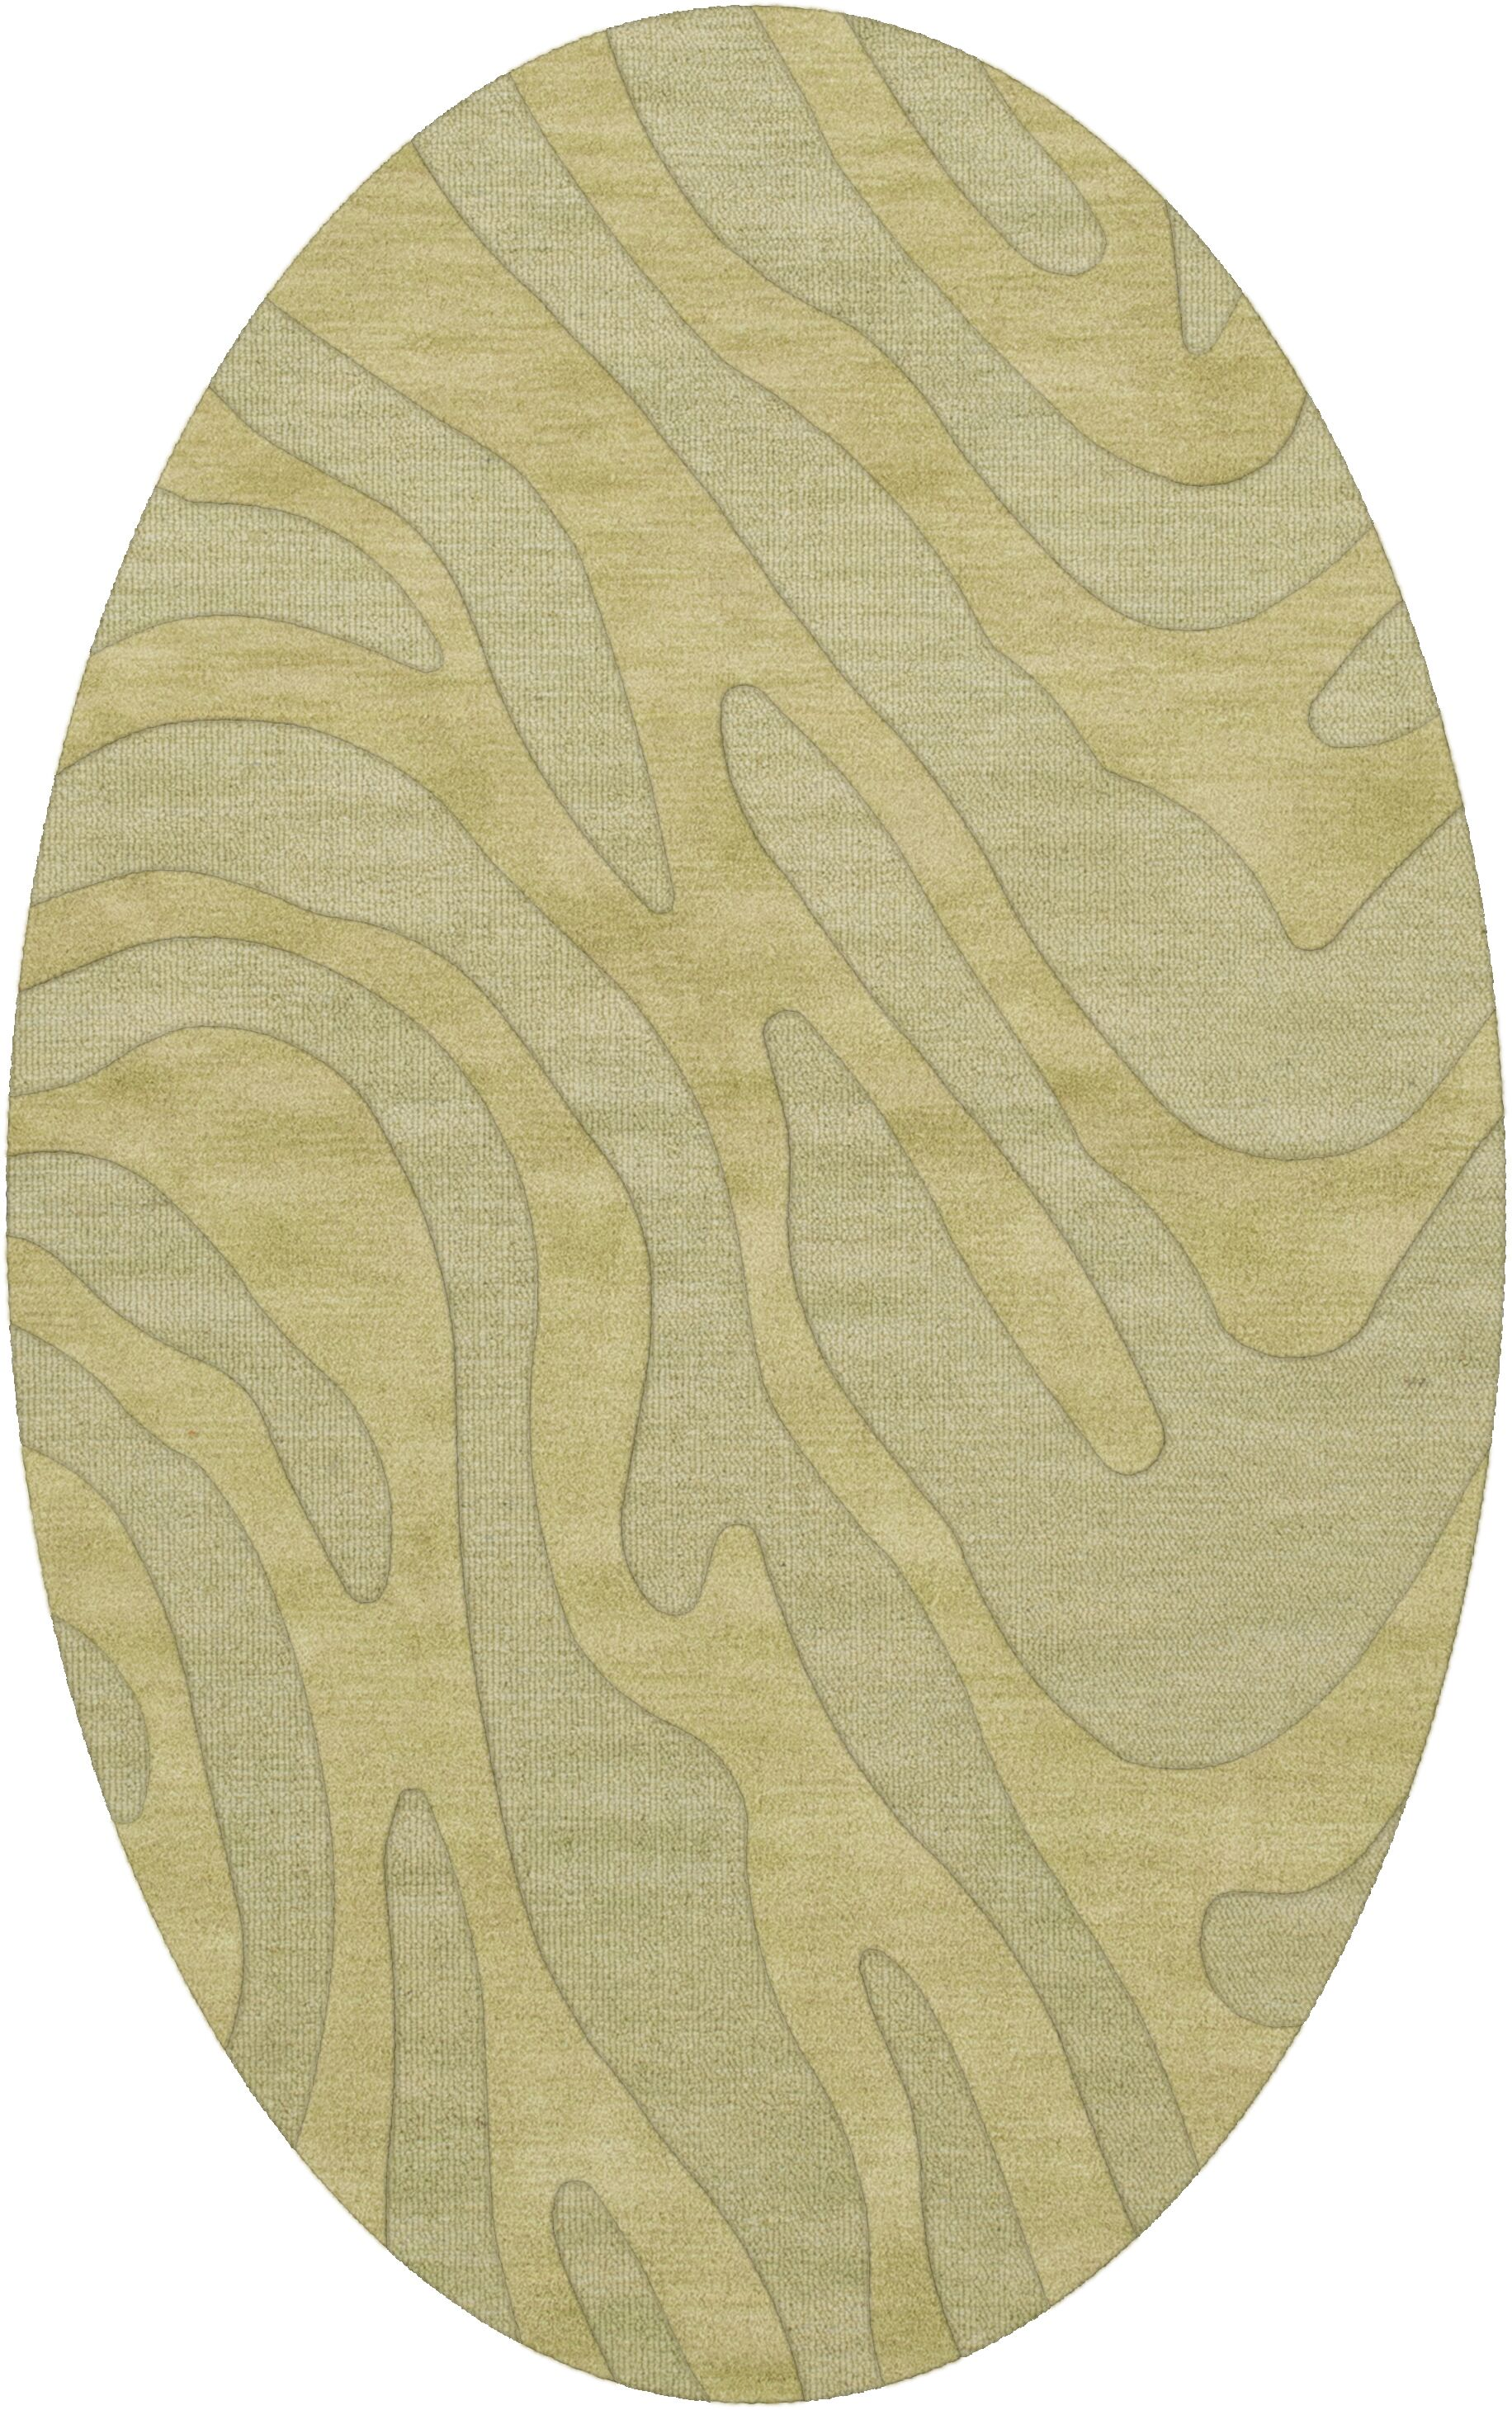 Dover Tufted Wool Mint Area Rug Rug Size: Oval 3' x 5'